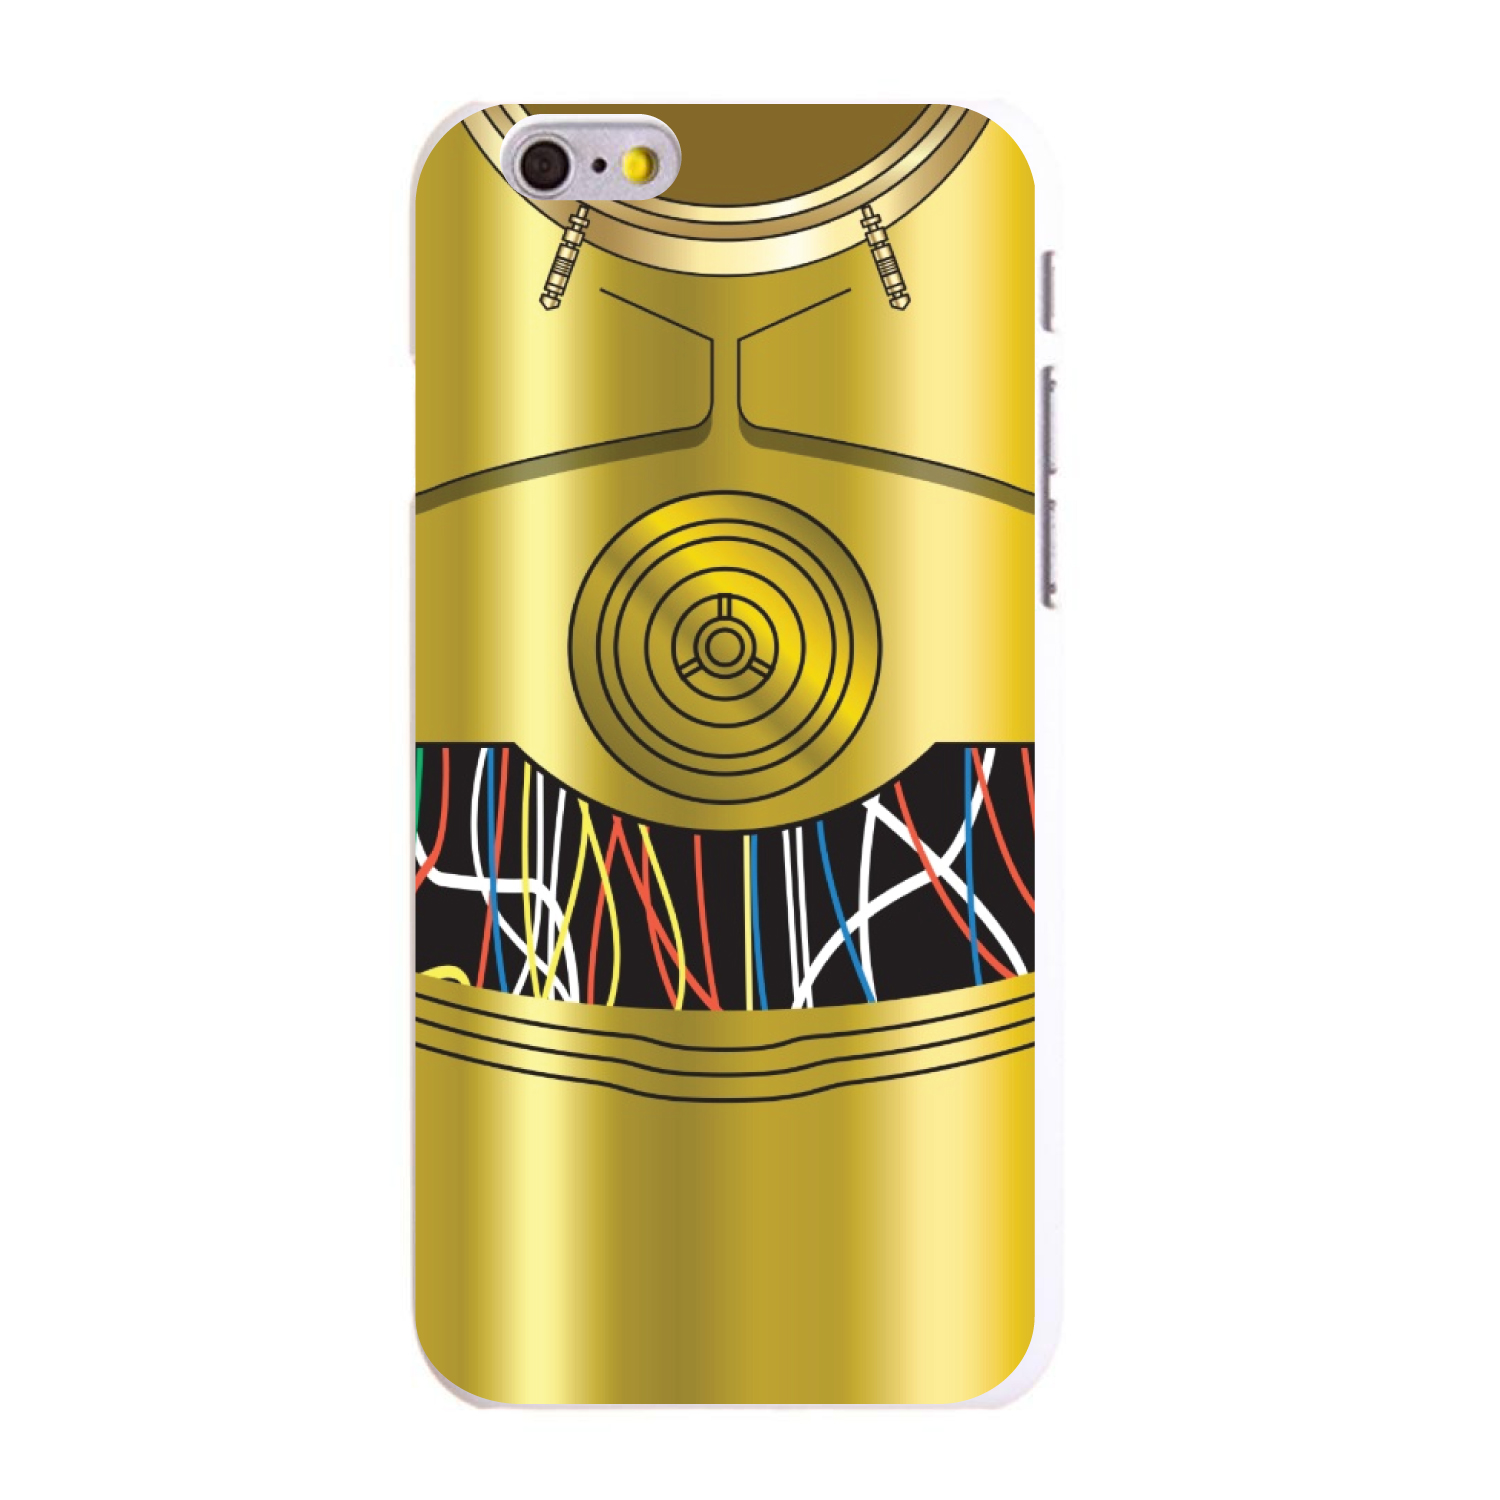 """CUSTOM White Hard Plastic Snap-On Case for Apple iPhone 6 PLUS / 6S PLUS (5.5"""" Screen) - C3PO-inspired gold with wires"""